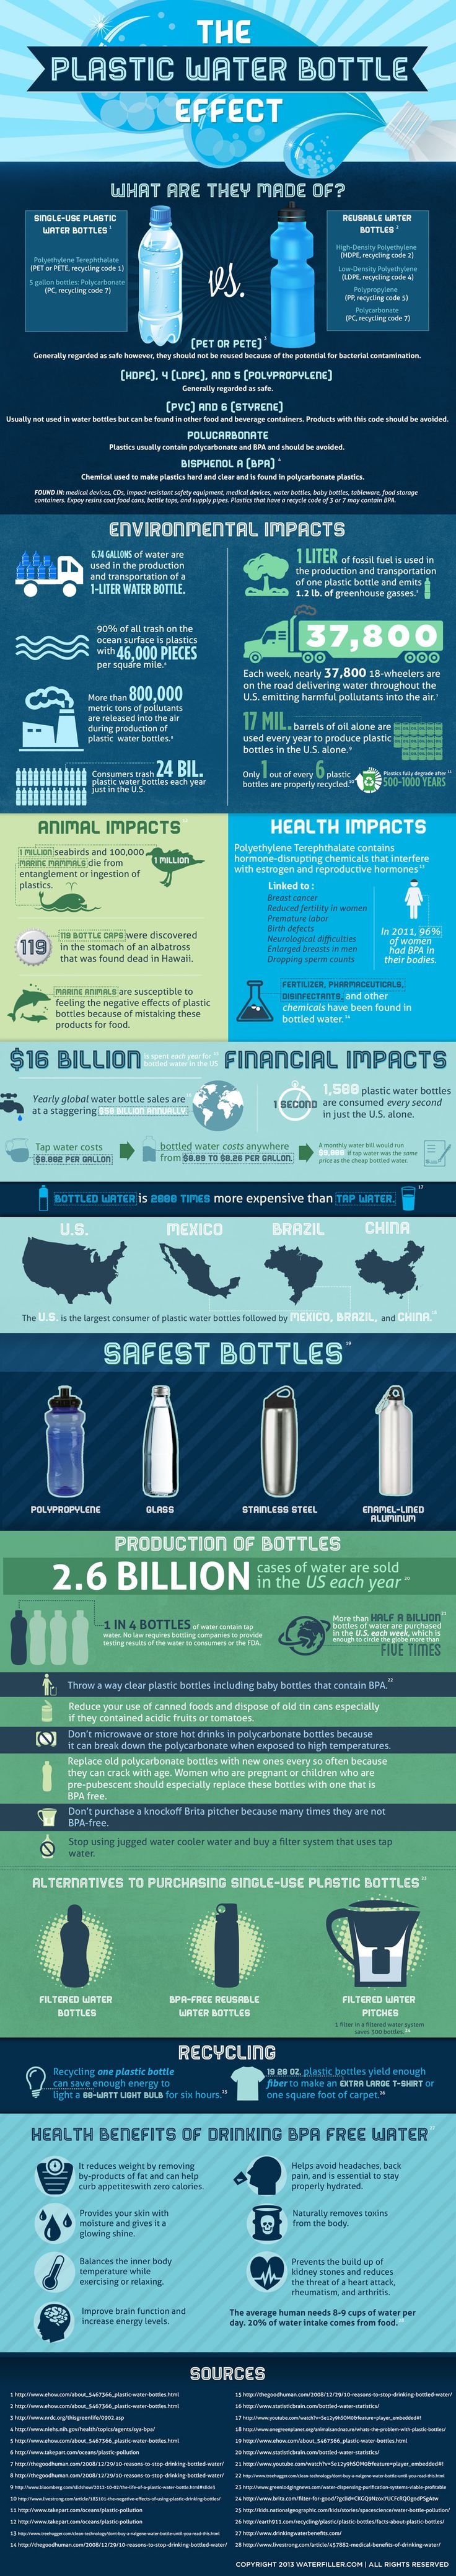 The plastic water bottle effect is so powerful. It is amazing to see the numbers of what small changes could effect. I think it is important that we are mindful and make these simple choices. Our planet is not something we can replace and it provides us with so much! -Ashley